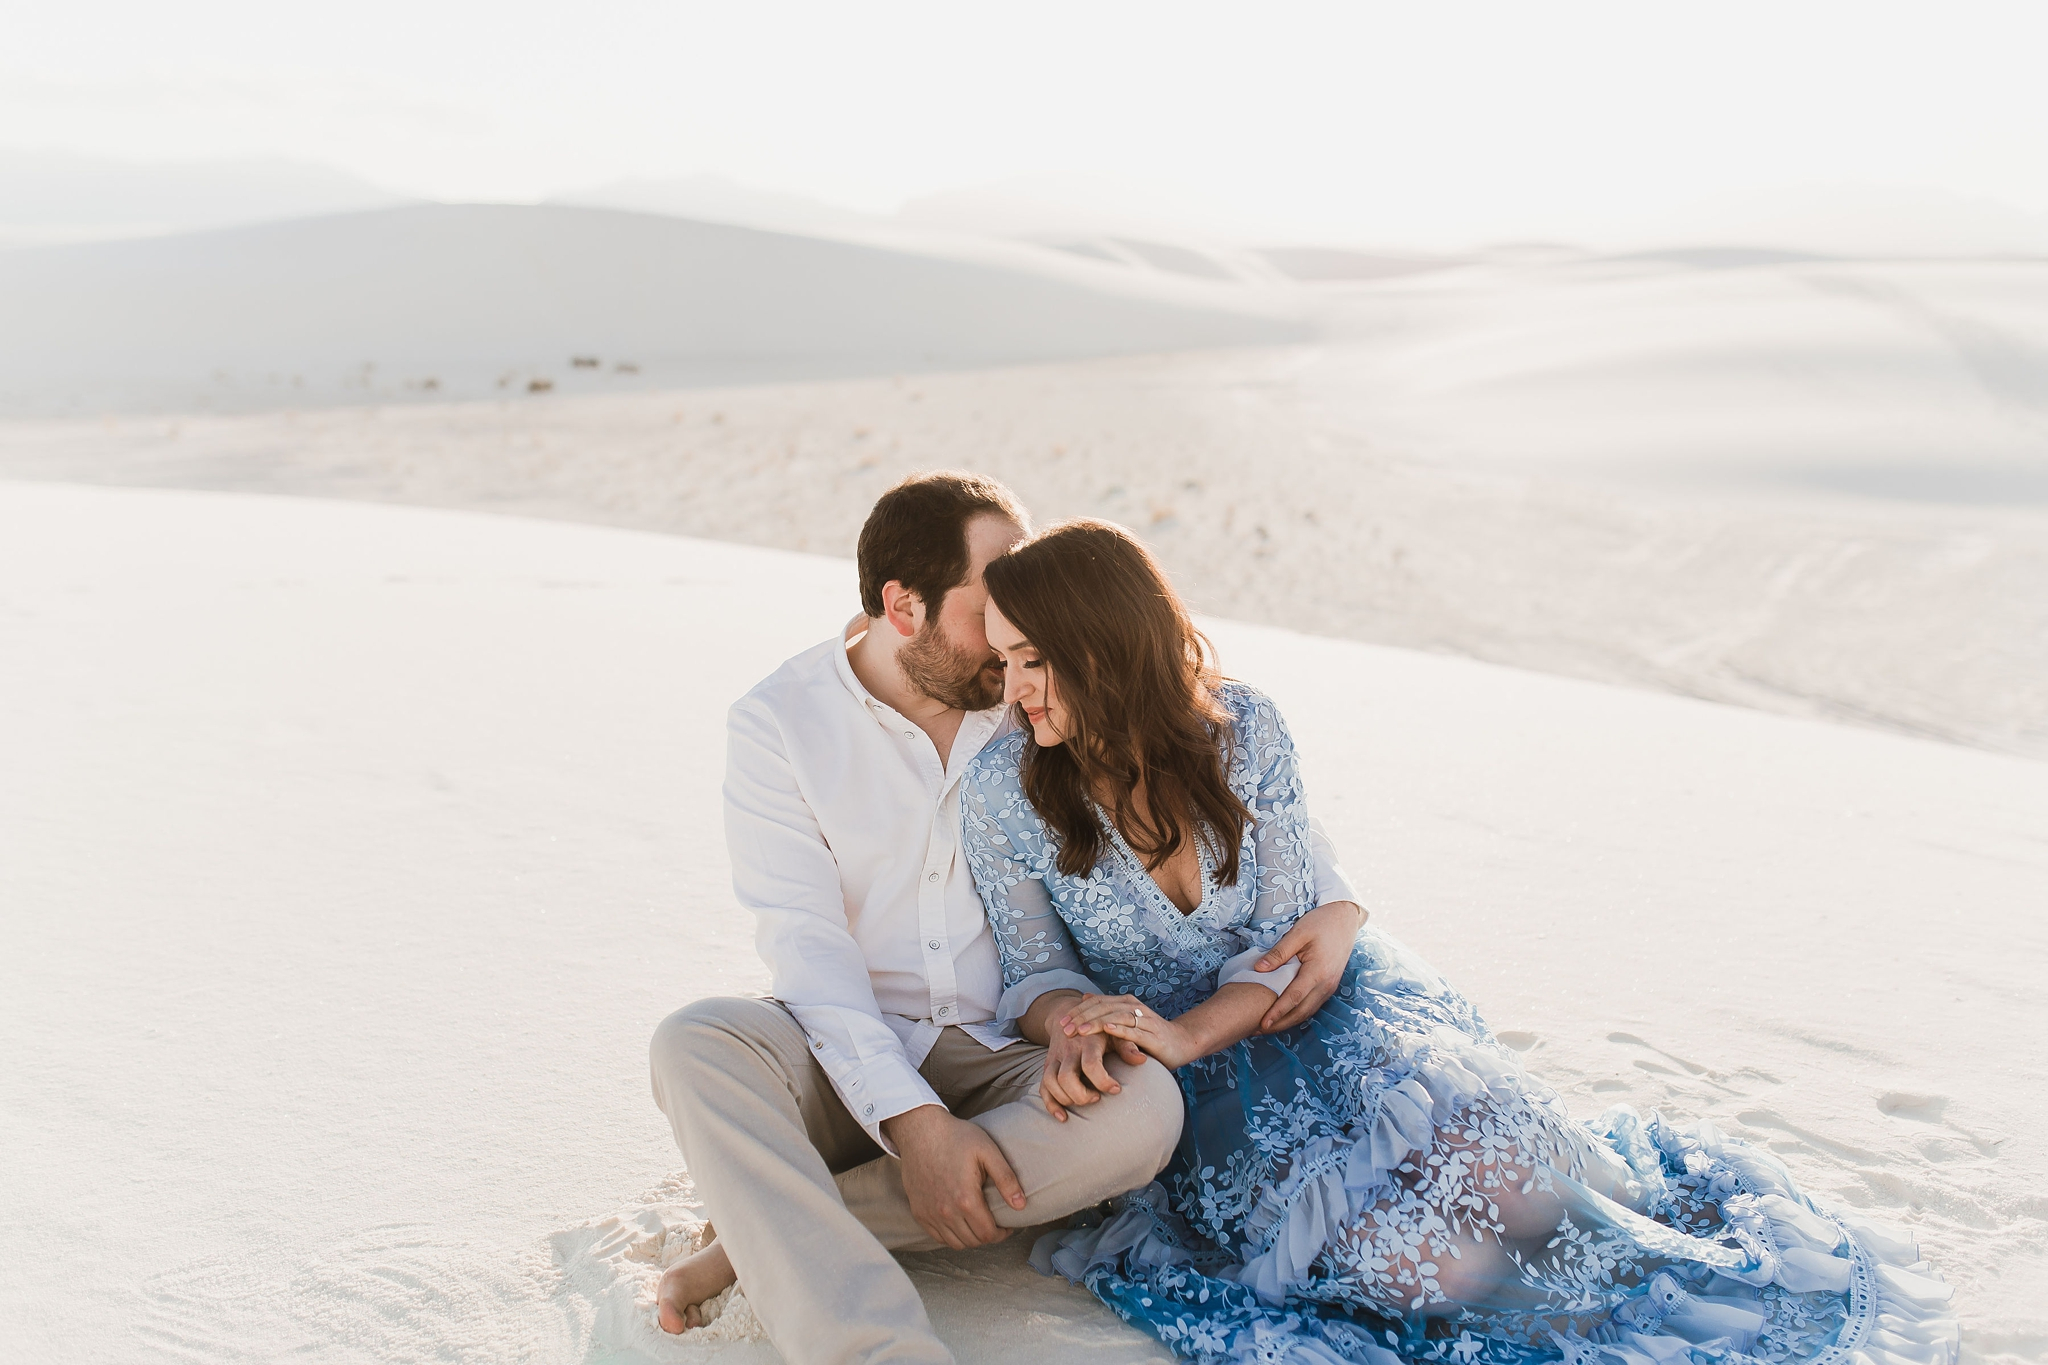 Alicia+lucia+photography+-+albuquerque+wedding+photographer+-+santa+fe+wedding+photography+-+new+mexico+wedding+photographer+-+new+mexico+wedding+-+new+mexico+engagement+-+white+sands+engagement+-+white+sands+national+monument_0026.jpg